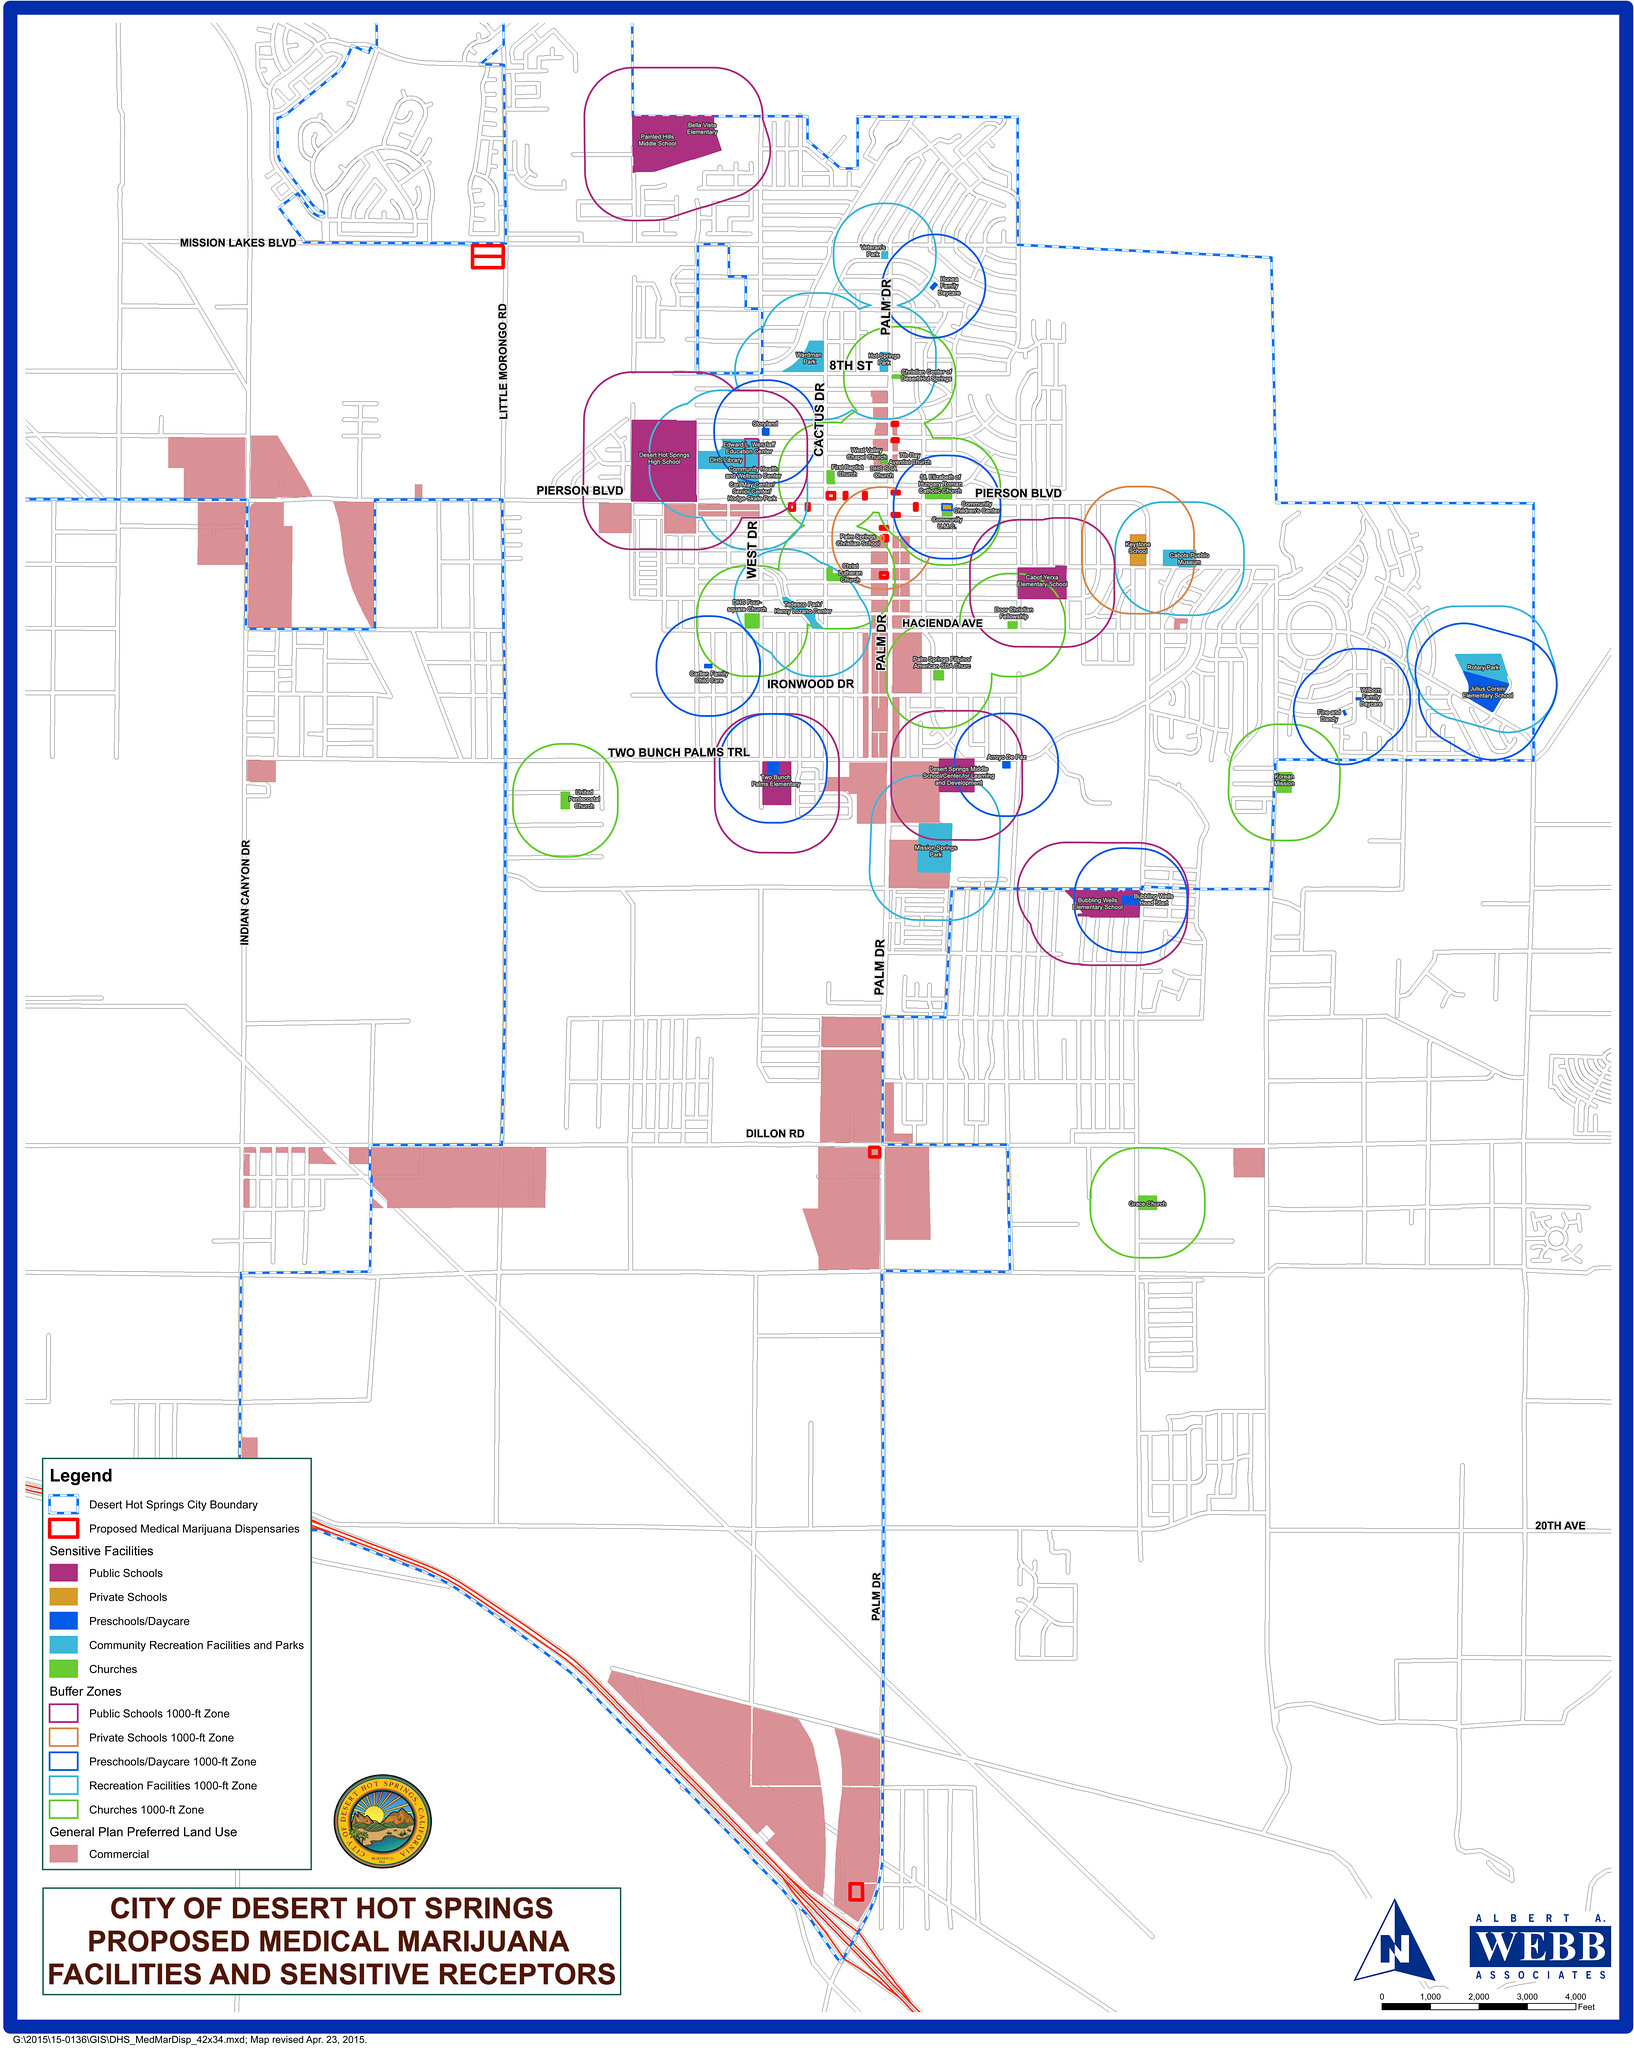 Desert Hot Springs map of proposed MMJ dispensary locations